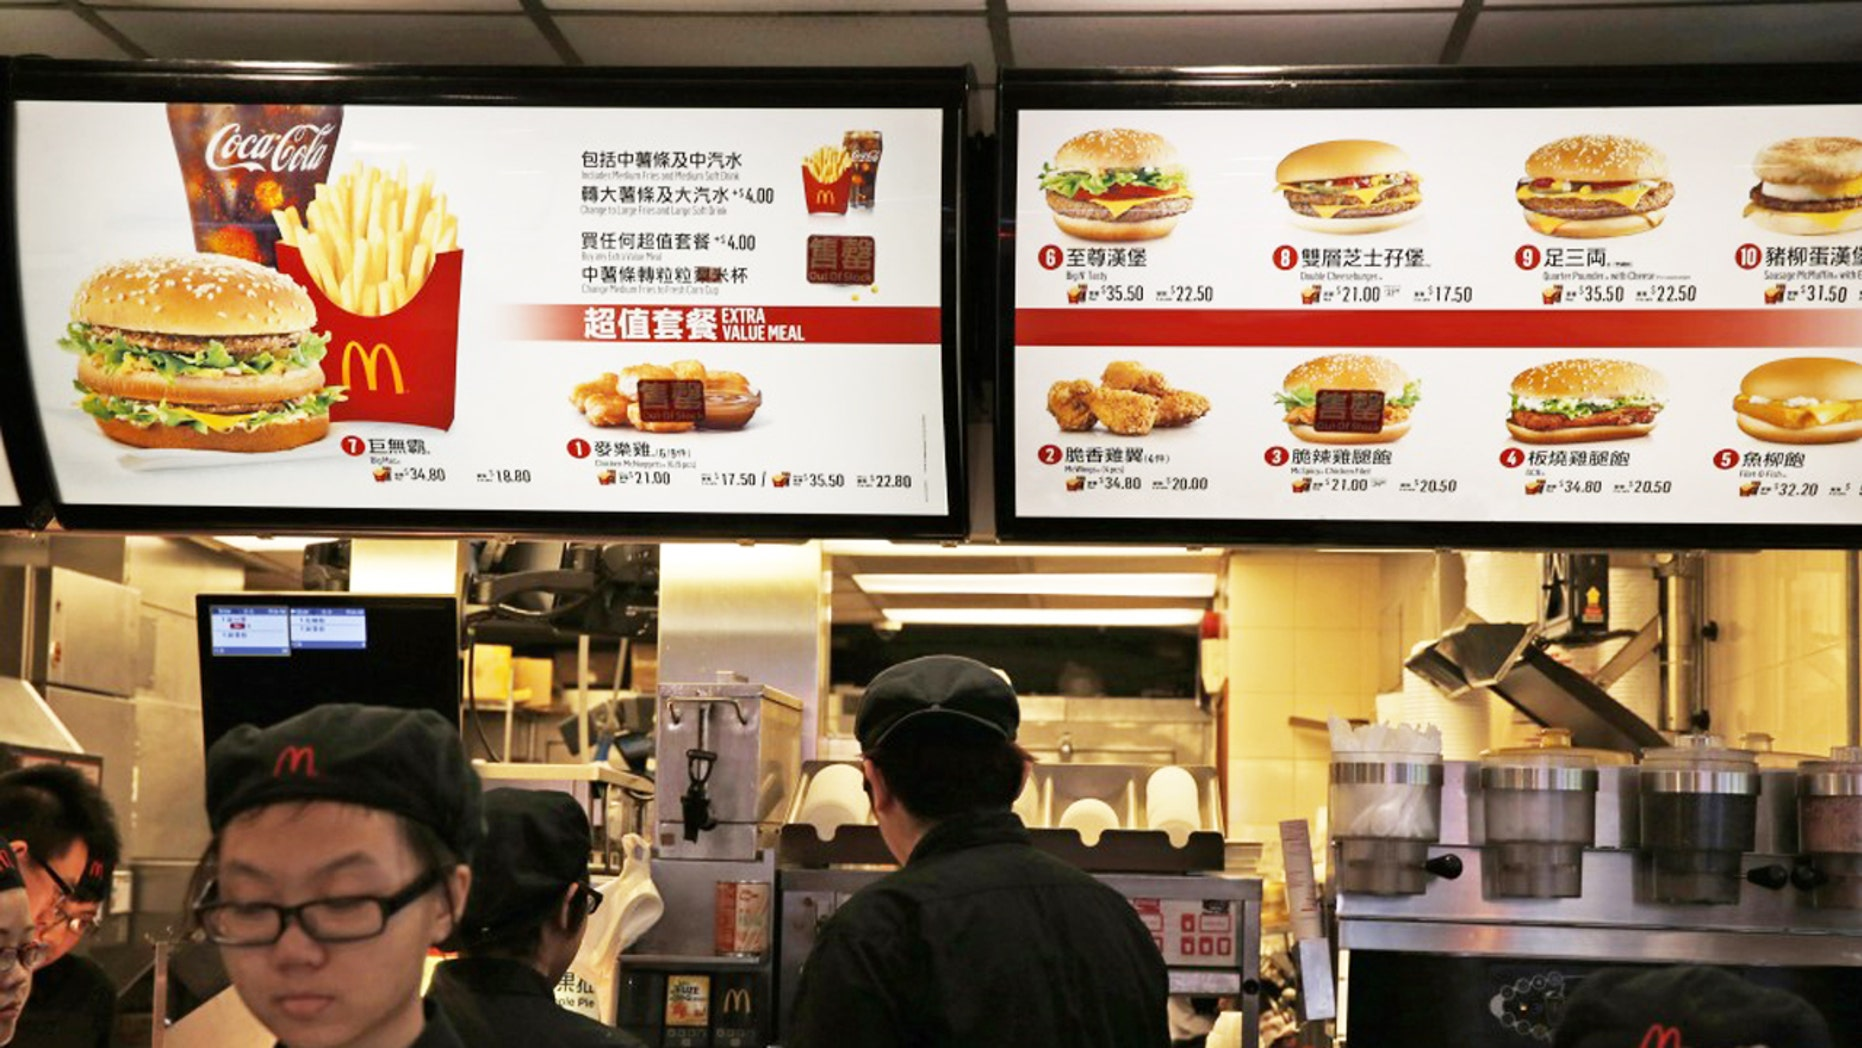 McDonald's in coming under fire from religious groups in Taiwan.